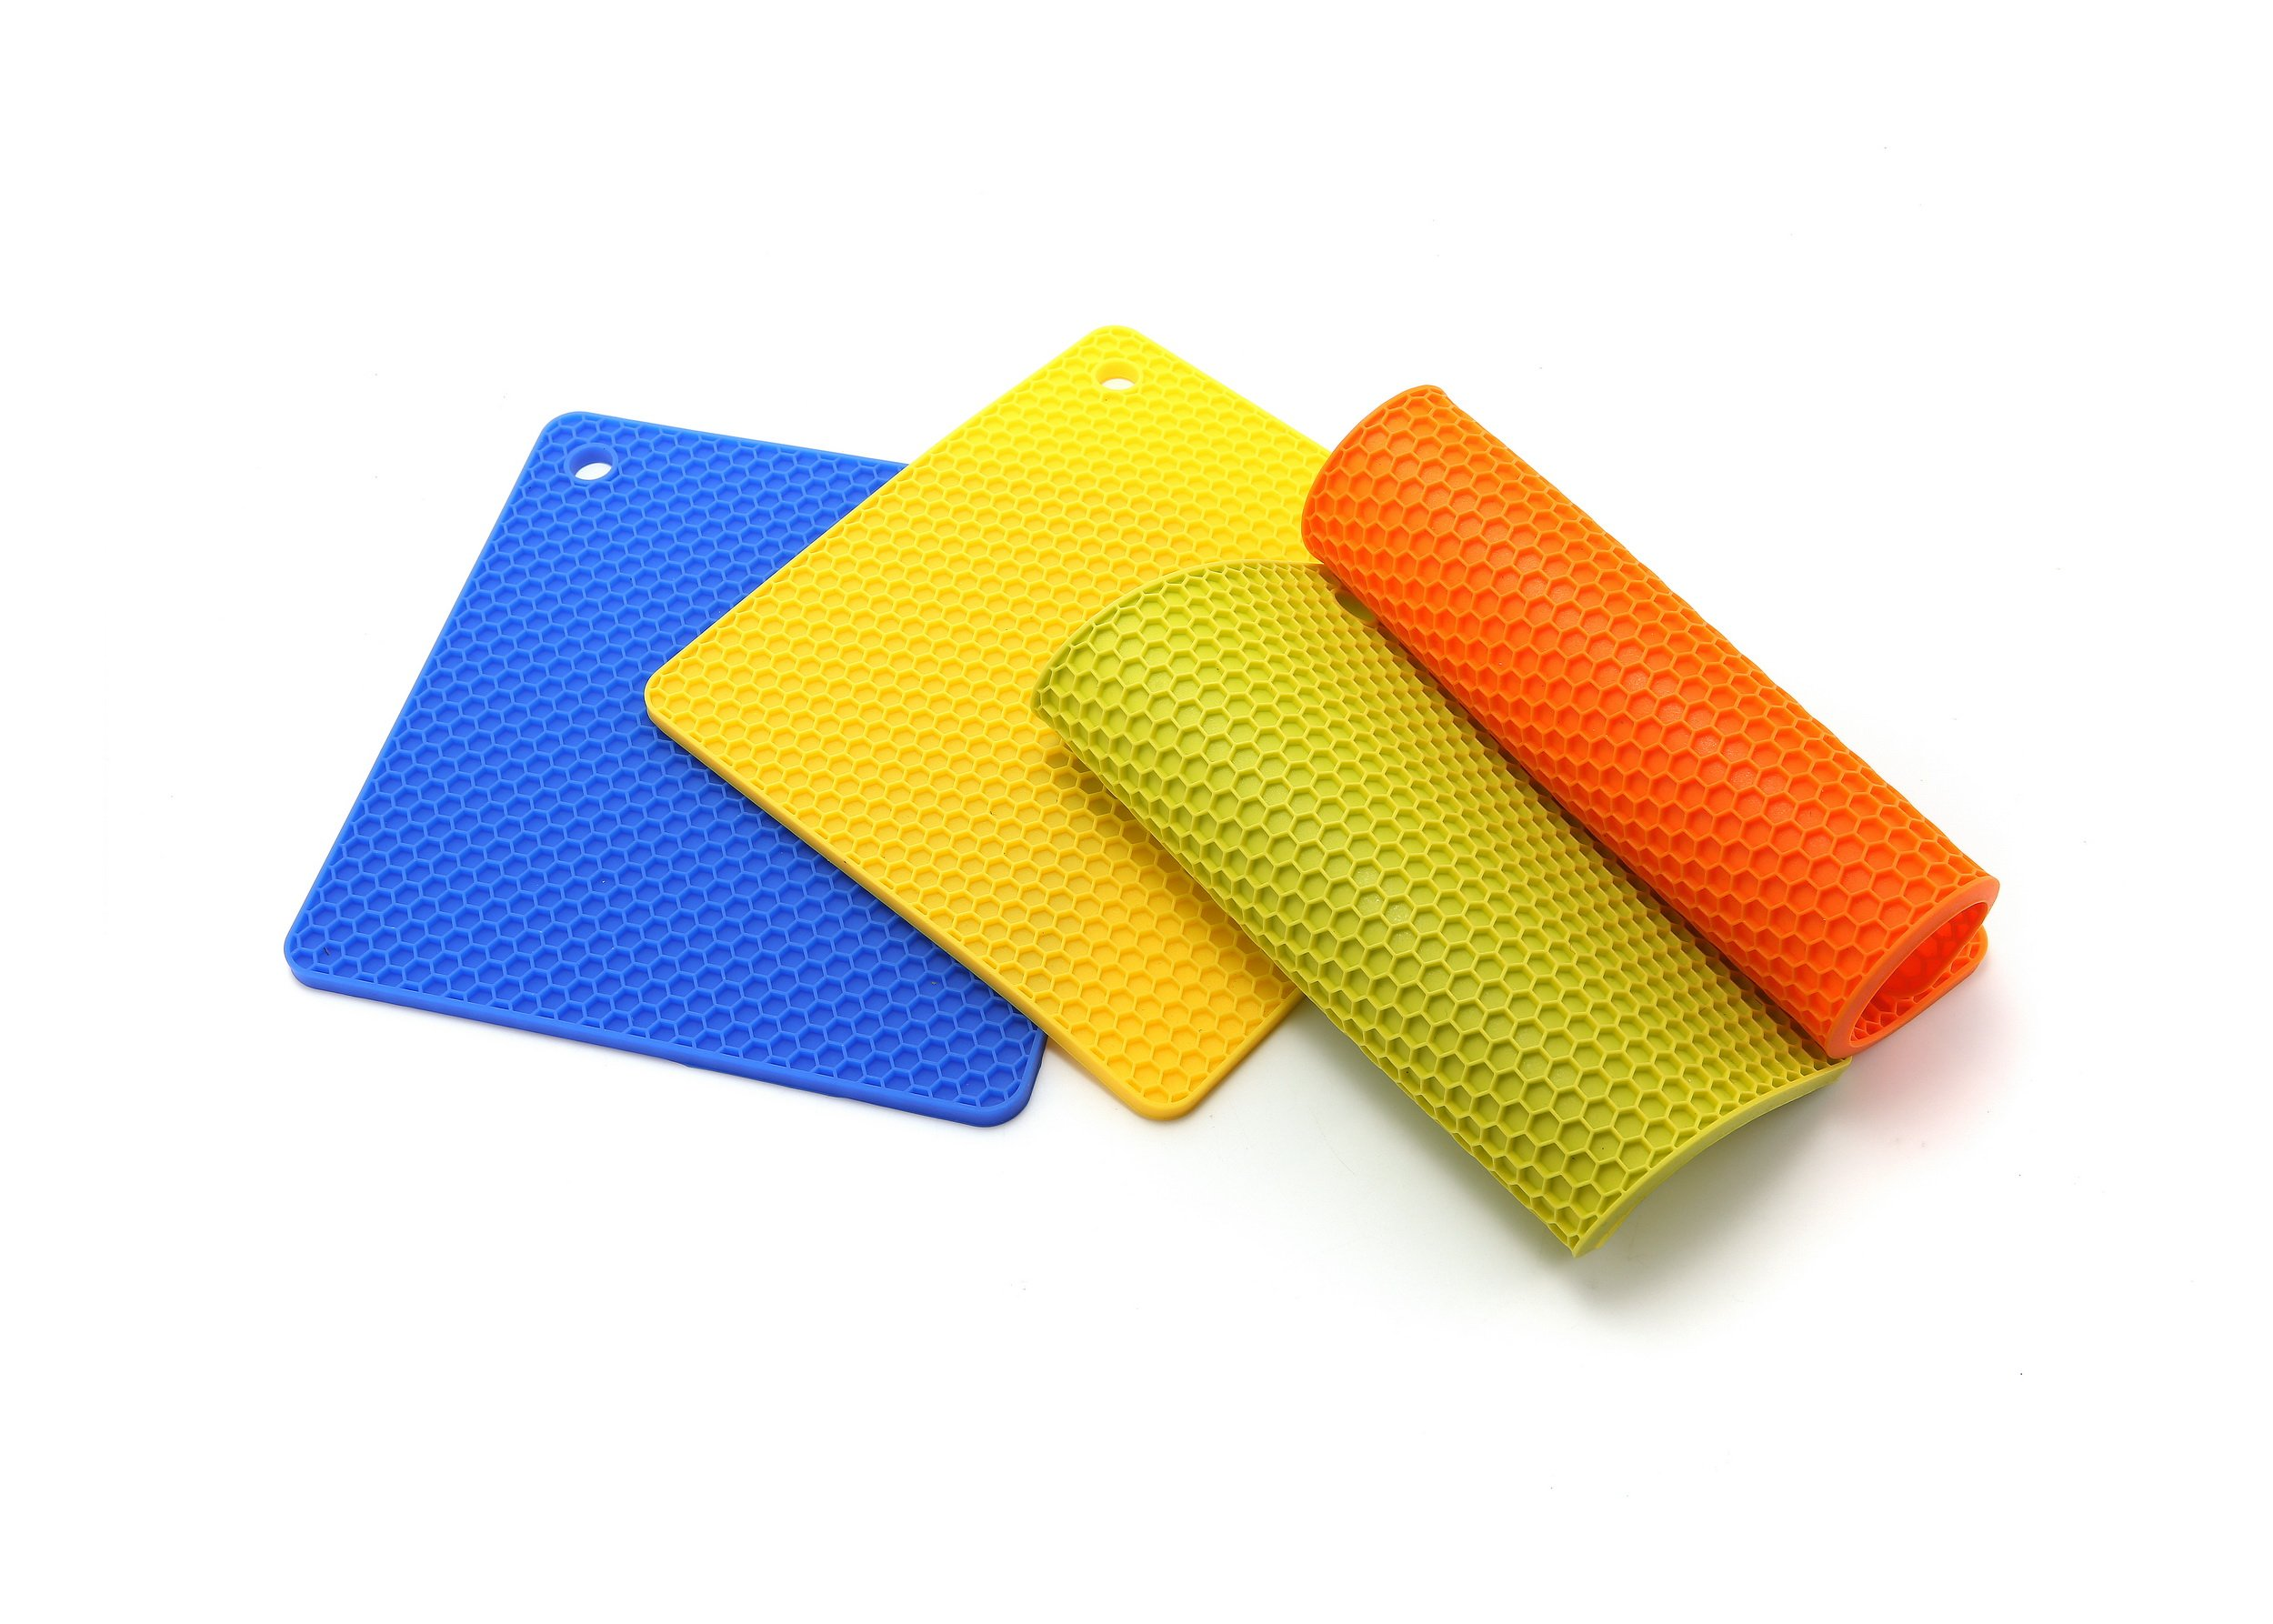 for silicone hair loading itm curling resistant ir mats mat heat anti is image straightener